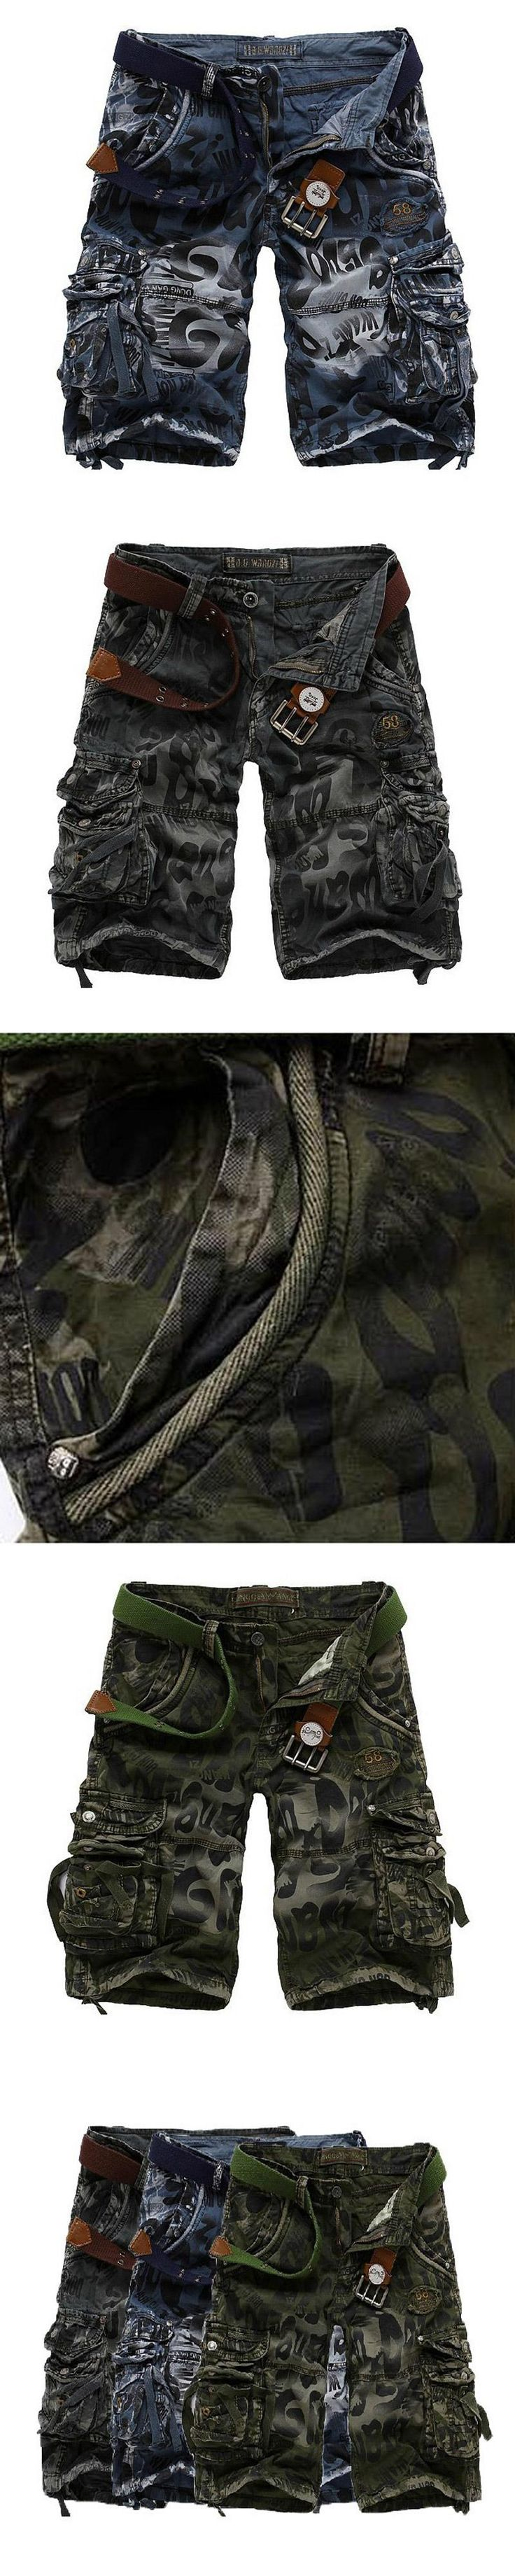 Wei JiXiong Camouflage Cargo Shorts Men 2017 New Mens Casual Short Male Loose Work Shorts Military Plus Size 29-38 No Belt